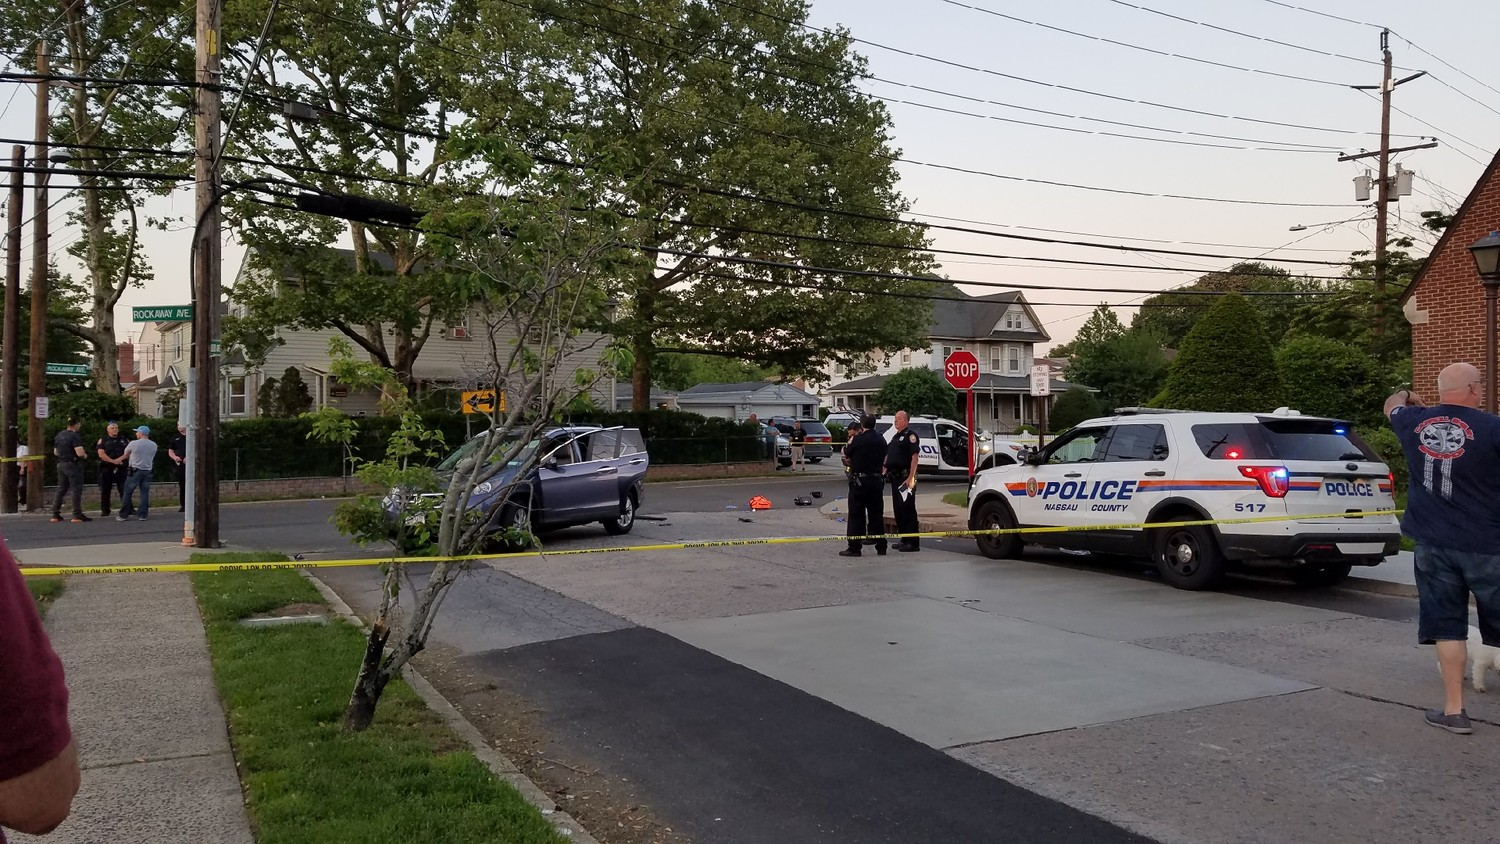 The intersection of Rockaway and Dubois Avenues was closed following a motorcyclist's death.